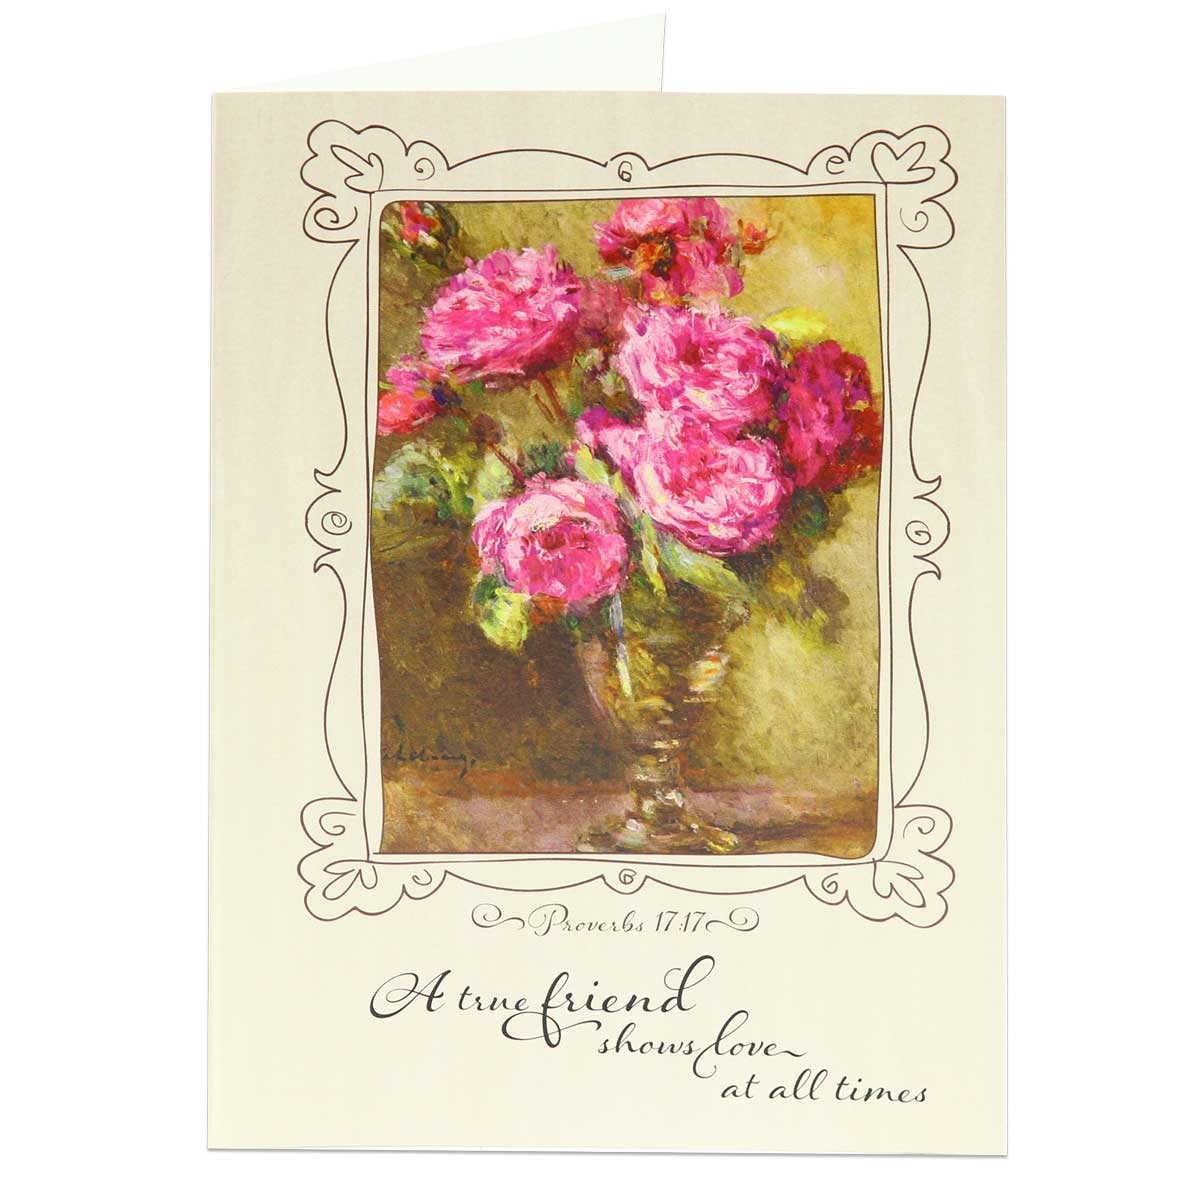 Proverbs 1717 greeting card friendship greeting cards friendship greeting card based on proverbs 1717 view larger photo email m4hsunfo